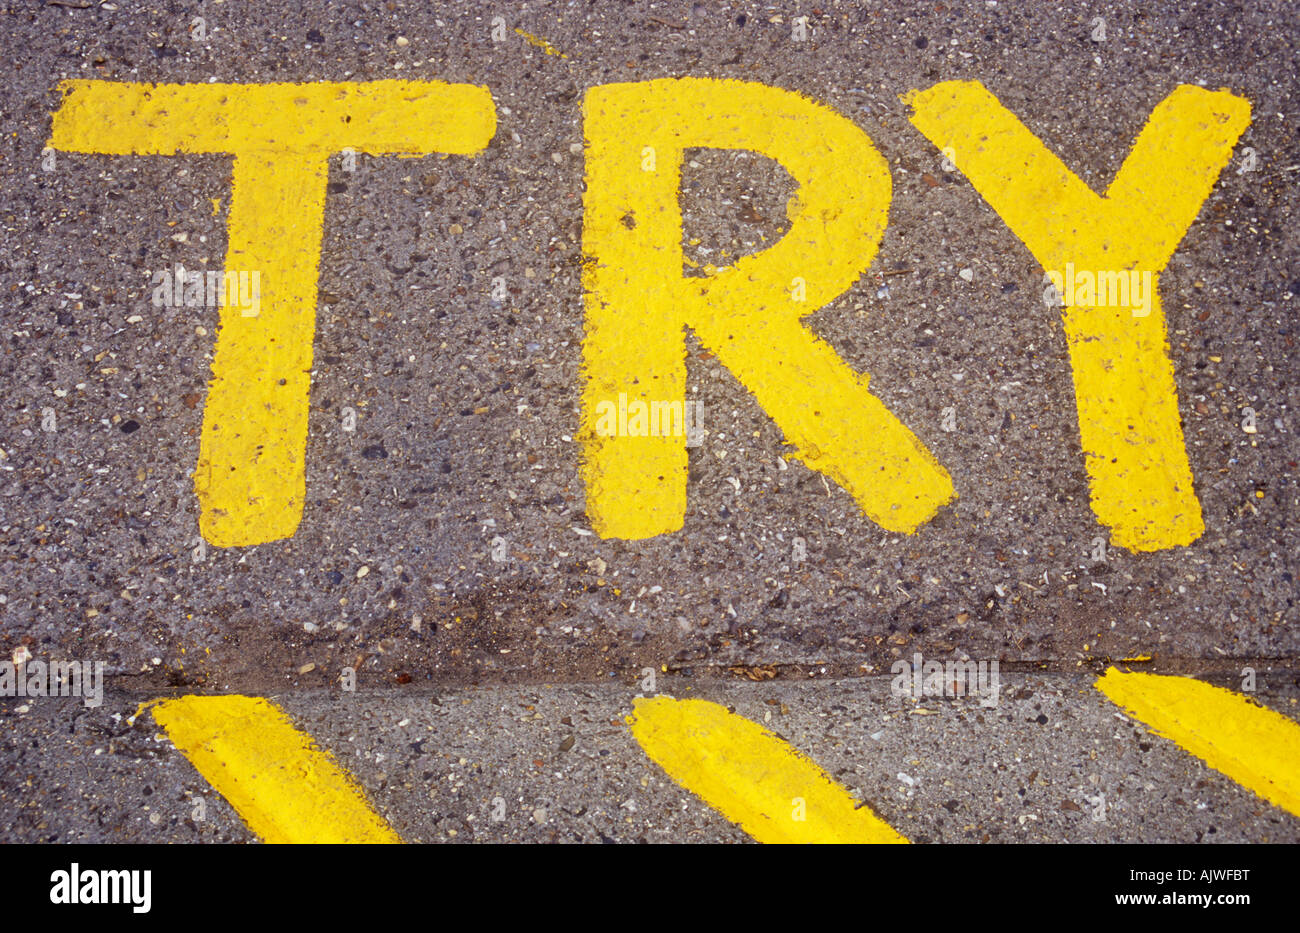 Yellow letters stating TRY and diagonal yellow hatched lines unevenly painted on concrete - Stock Image